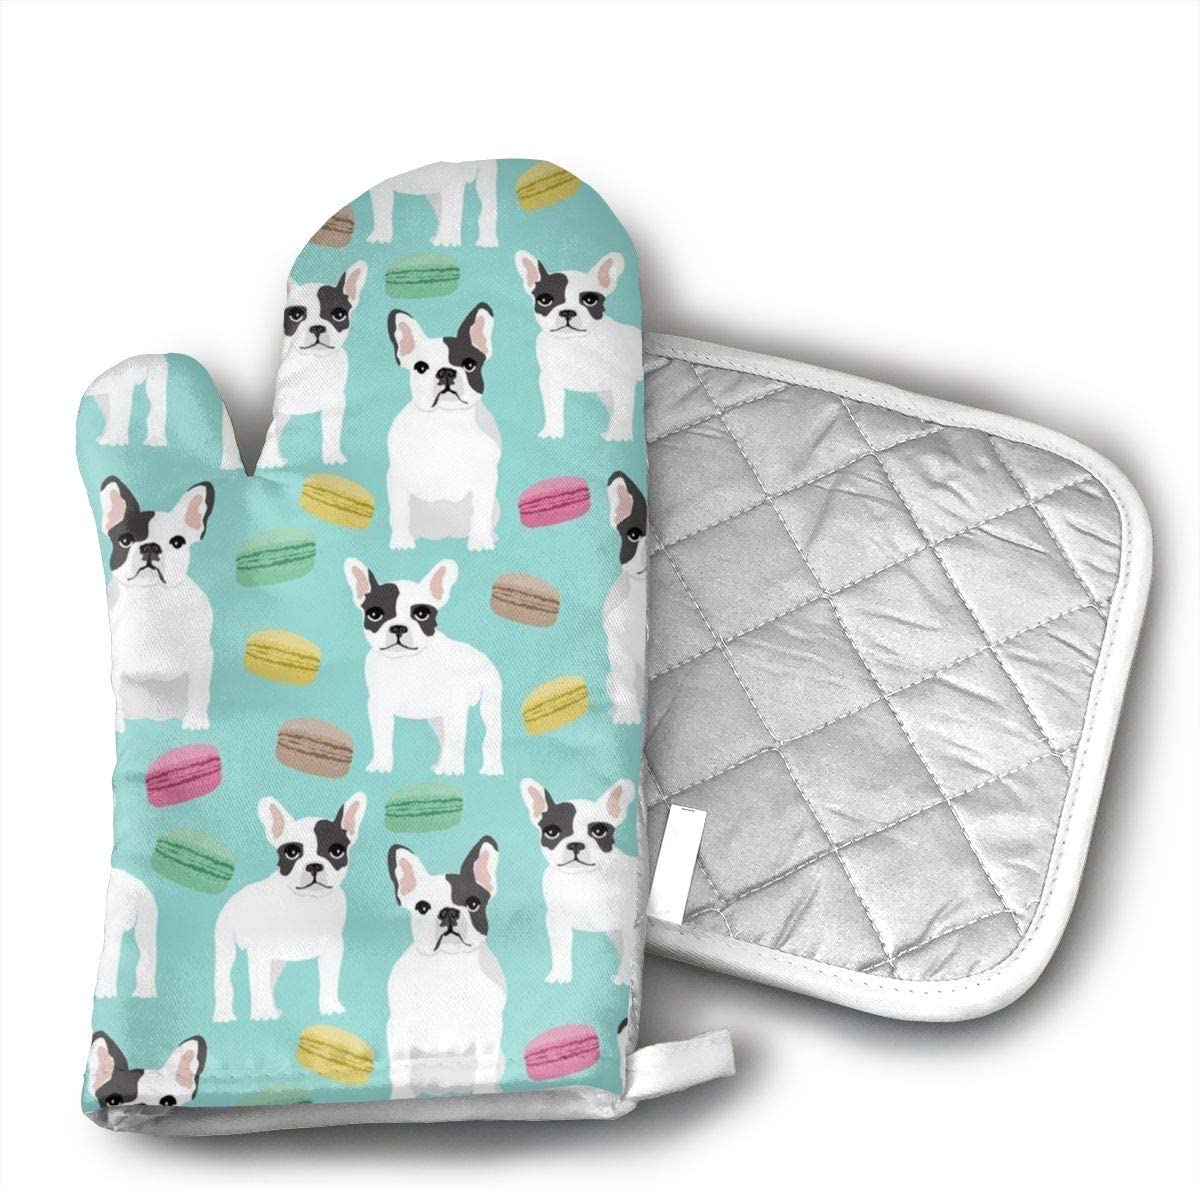 JFNNRUOP French Bulldog Oven Mitts,with Potholders Oven Gloves,Insulated Quilted Cotton Potholders